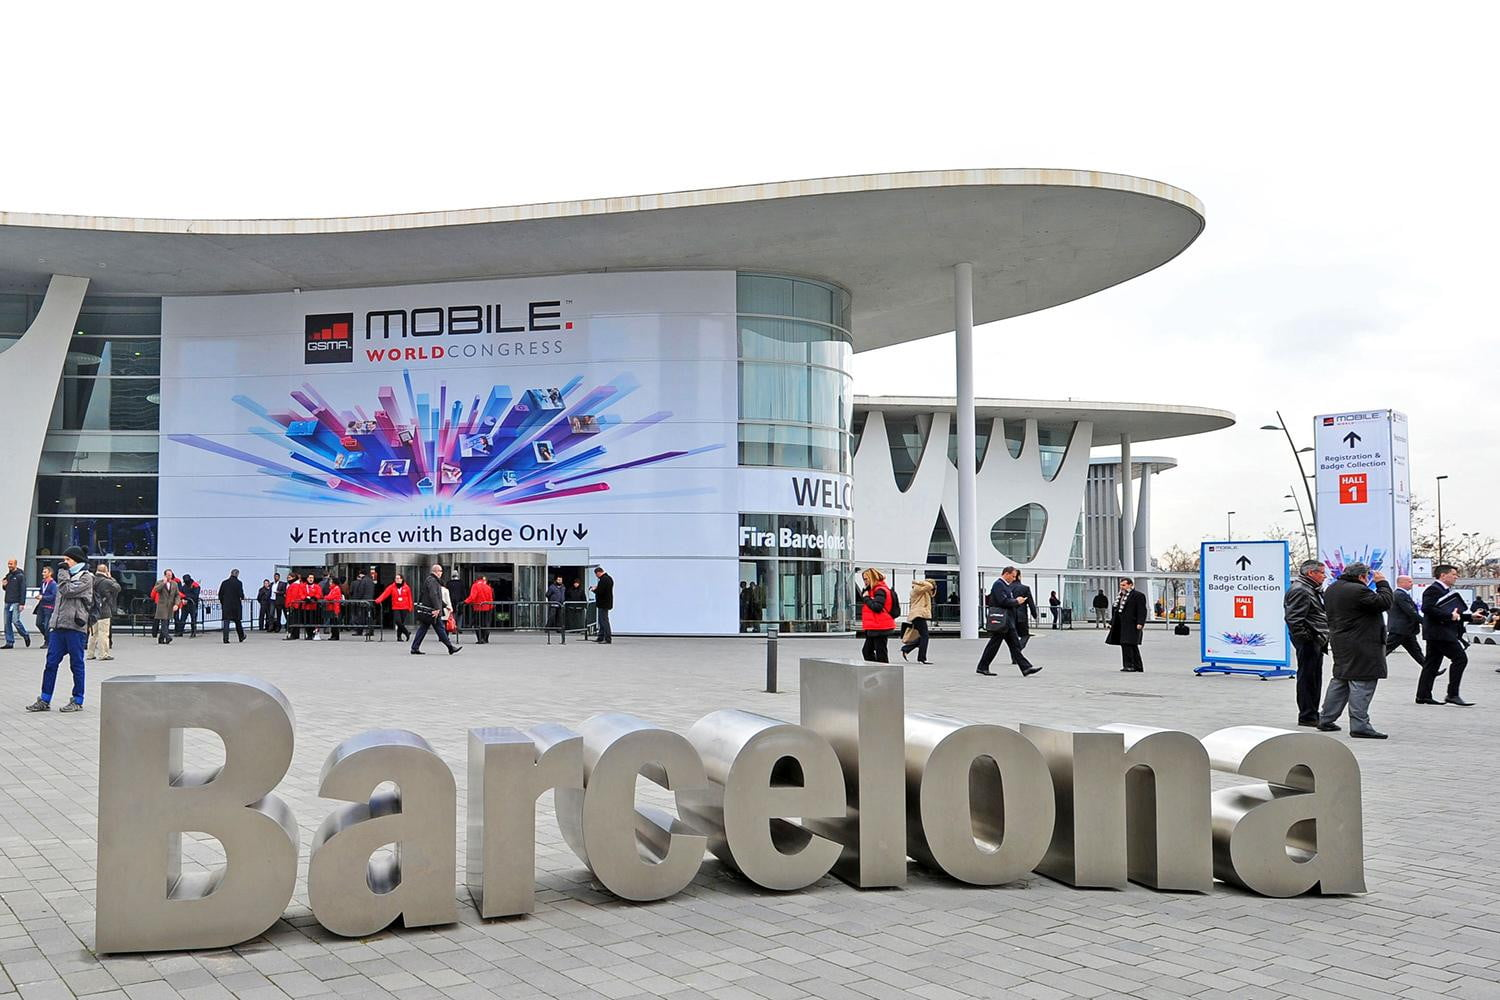 5G, foldable phones, and magic-like gestures will take center stage at MWC 2019